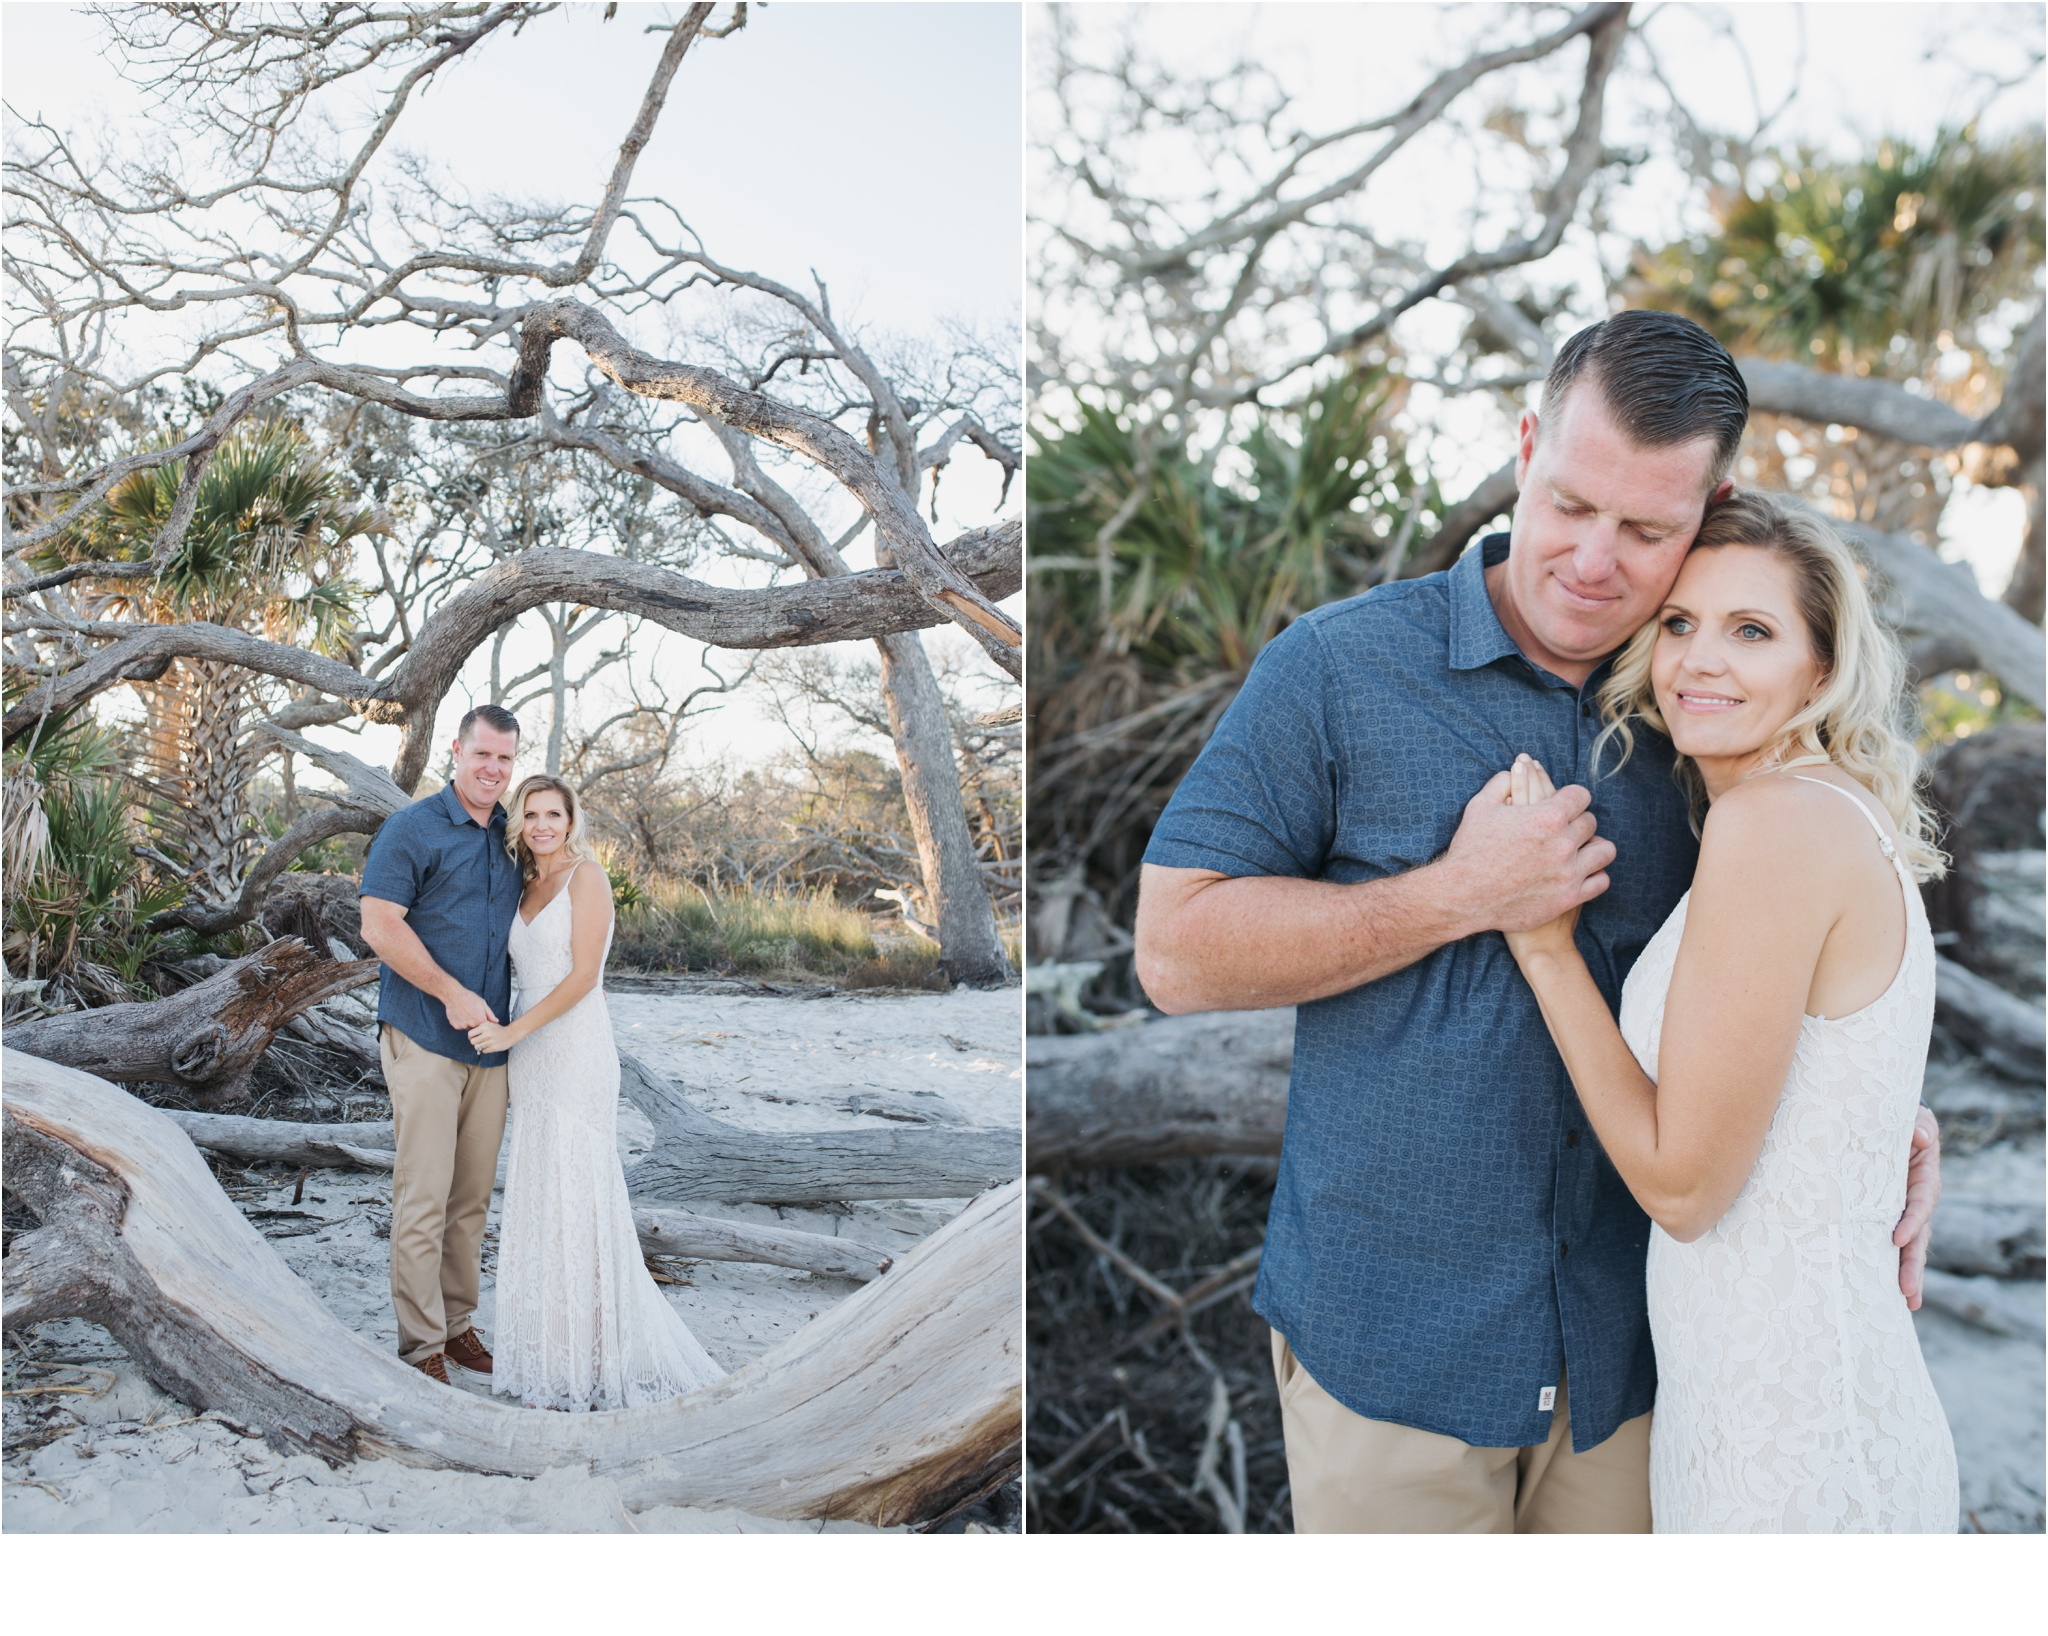 Rainey_Gregg_Photography_St._Simons_Island_Georgia_California_Wedding_Portrait_Photography_1589.jpg